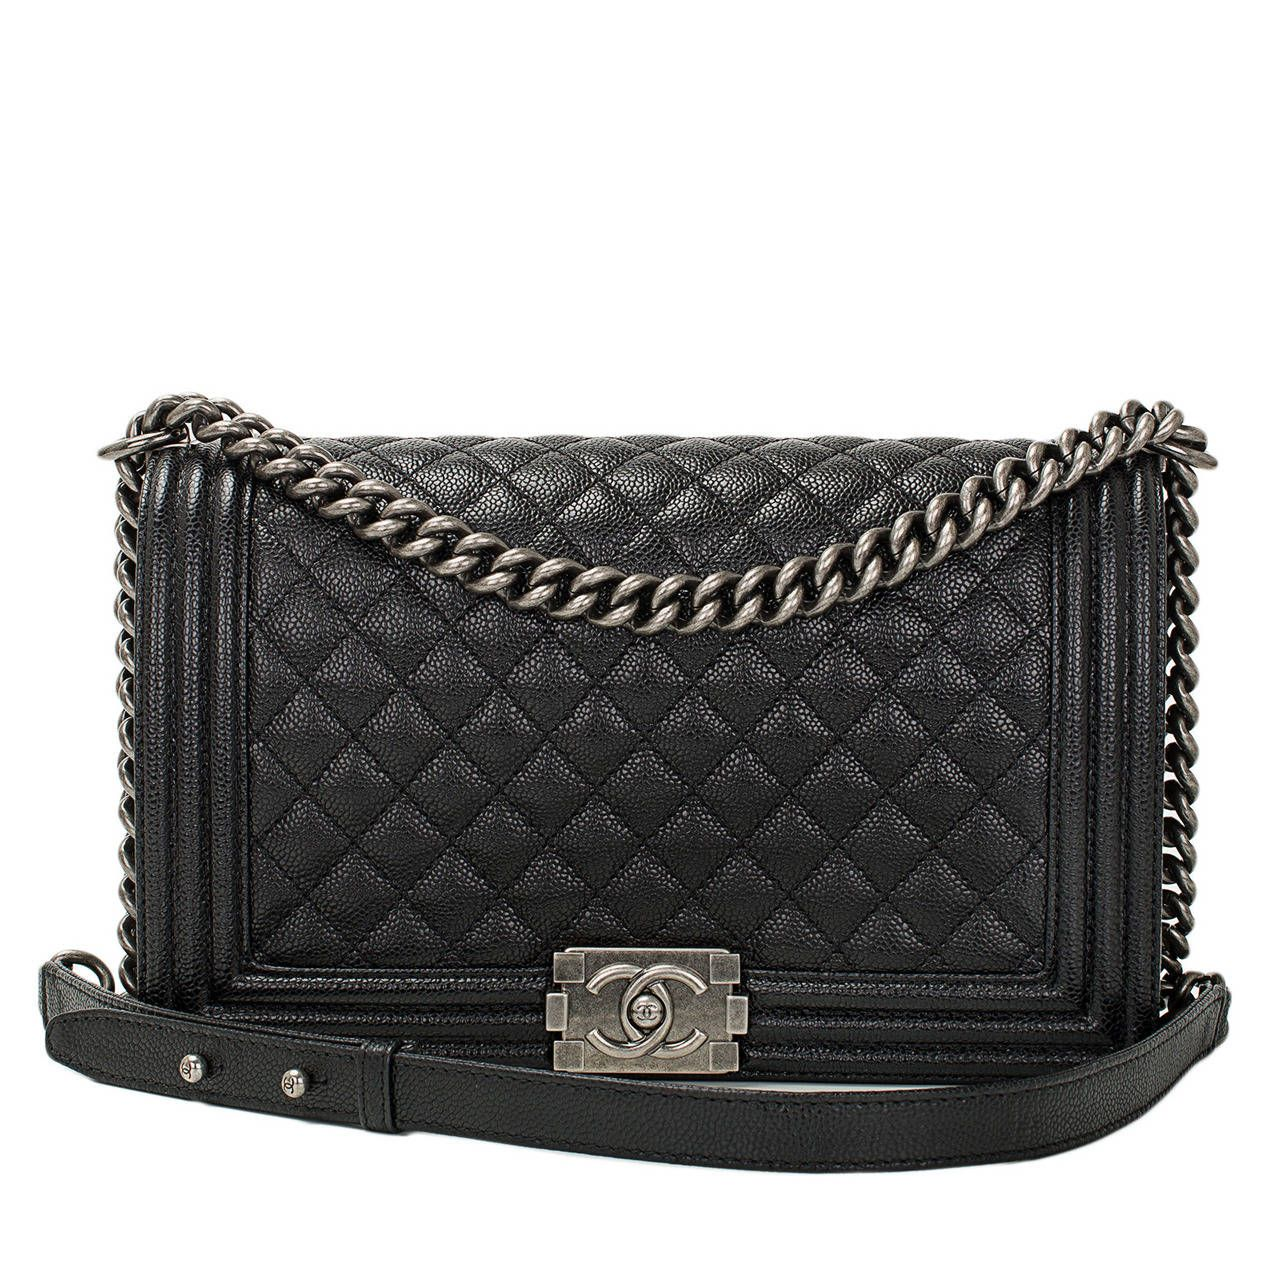 chanel black caviar new medium boy bag | chanel black, caviar and